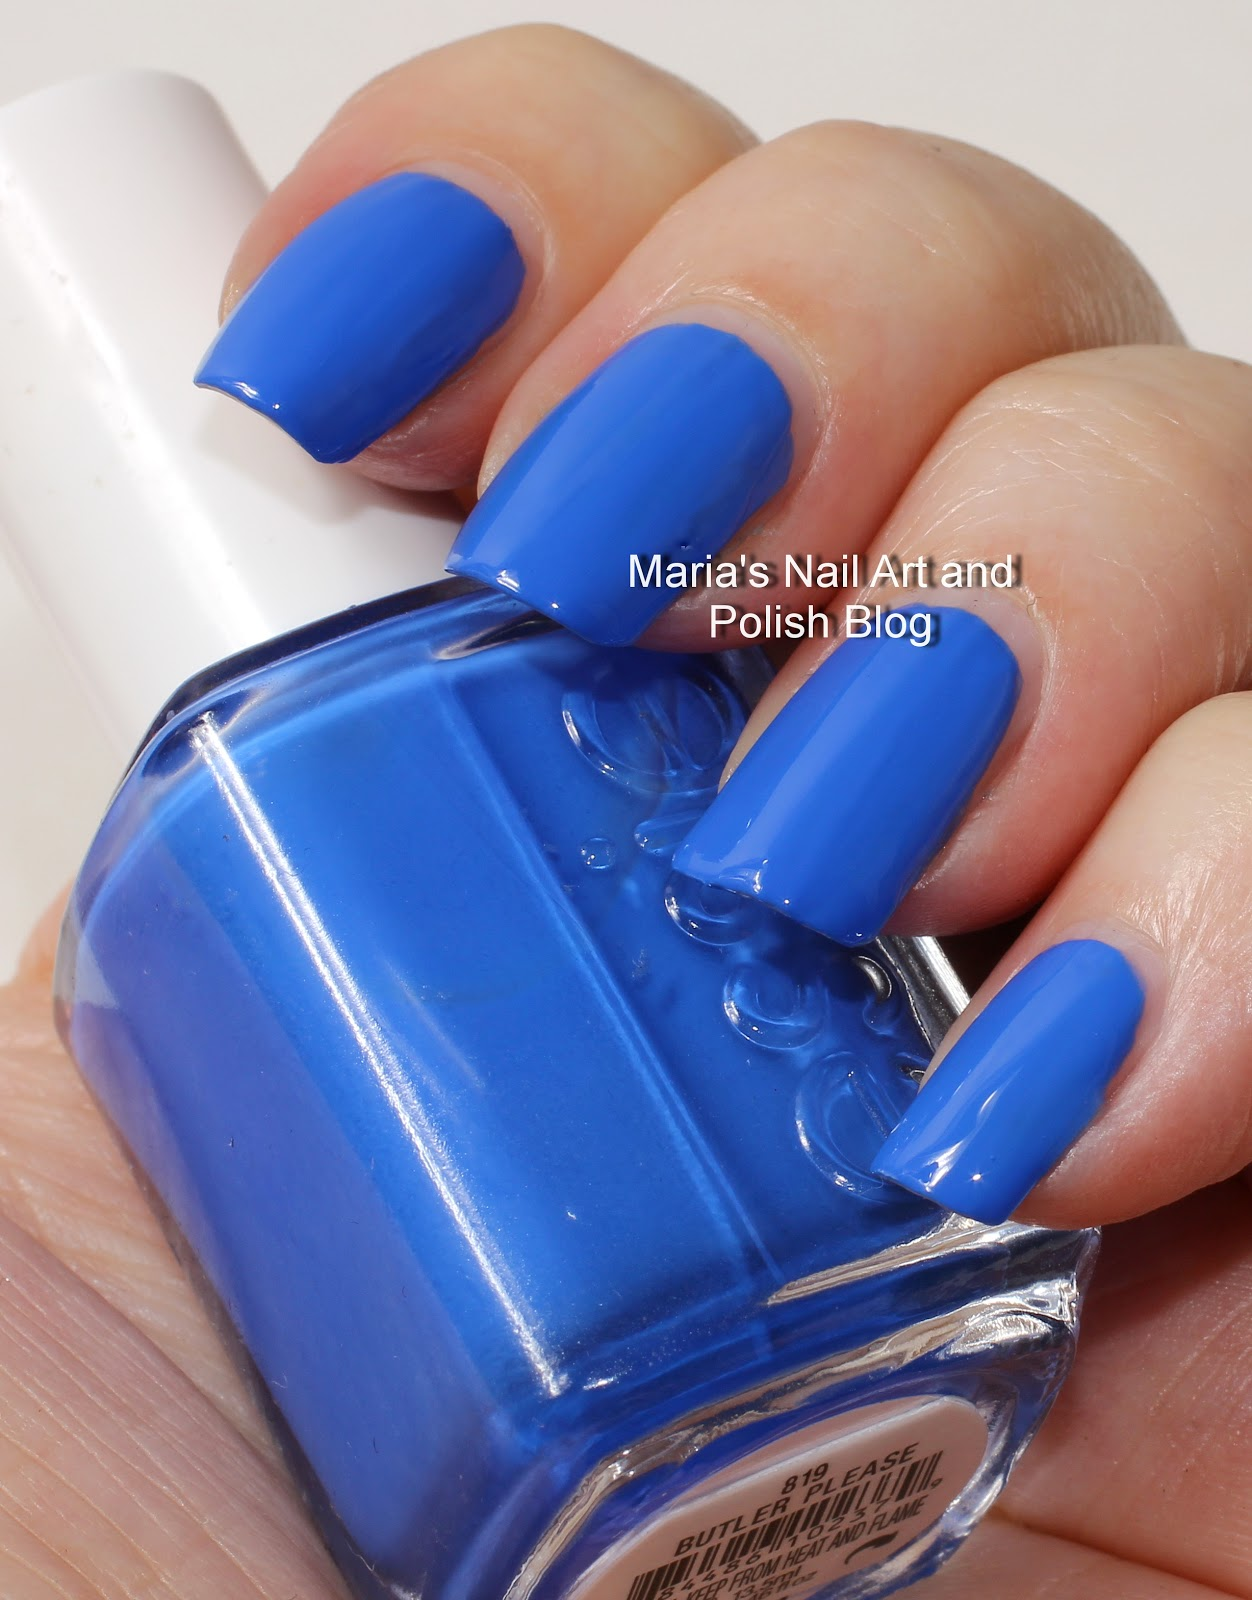 Marias Nail Art and Polish Blog: Essie swatches: Butler Please and ...